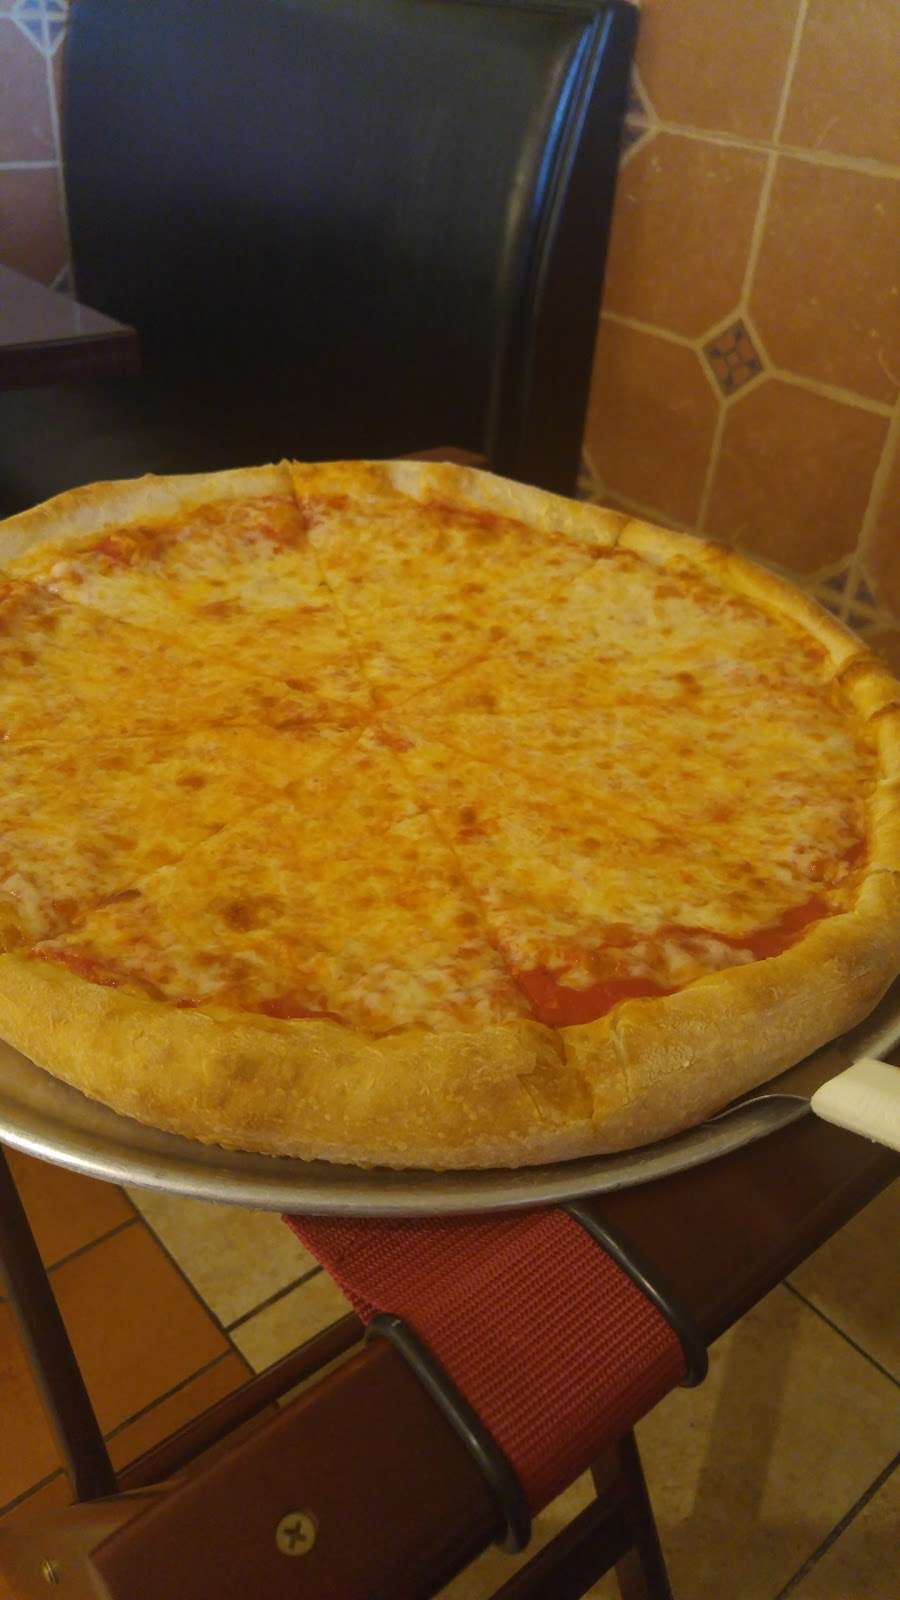 Mammas Pizza - restaurant  | Photo 7 of 10 | Address: 215 N Main St, Loganville, PA 17342, USA | Phone: (717) 428-3026